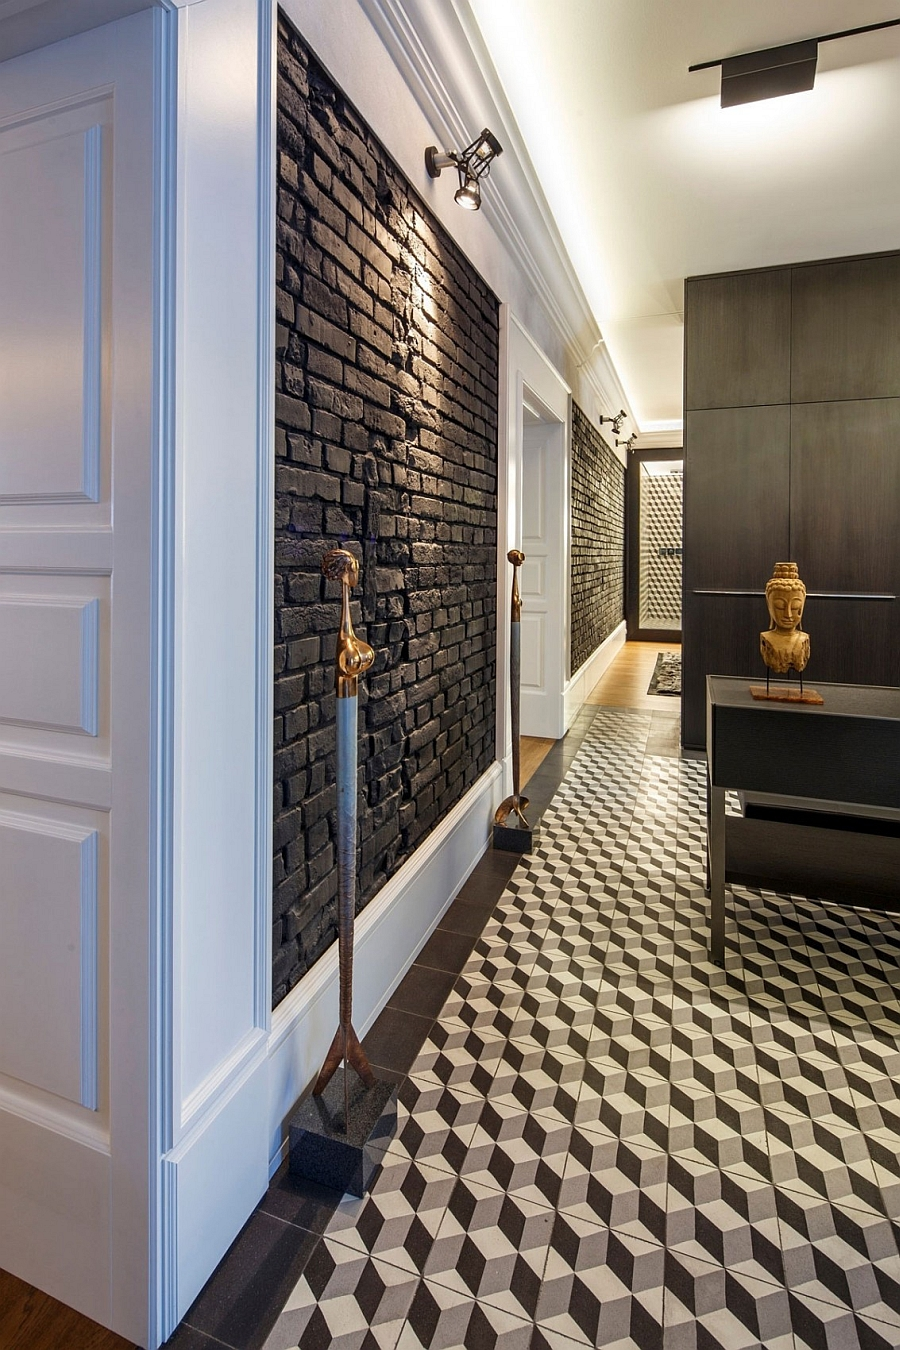 Posh Private Home In Slovakia Geometric Patterns And